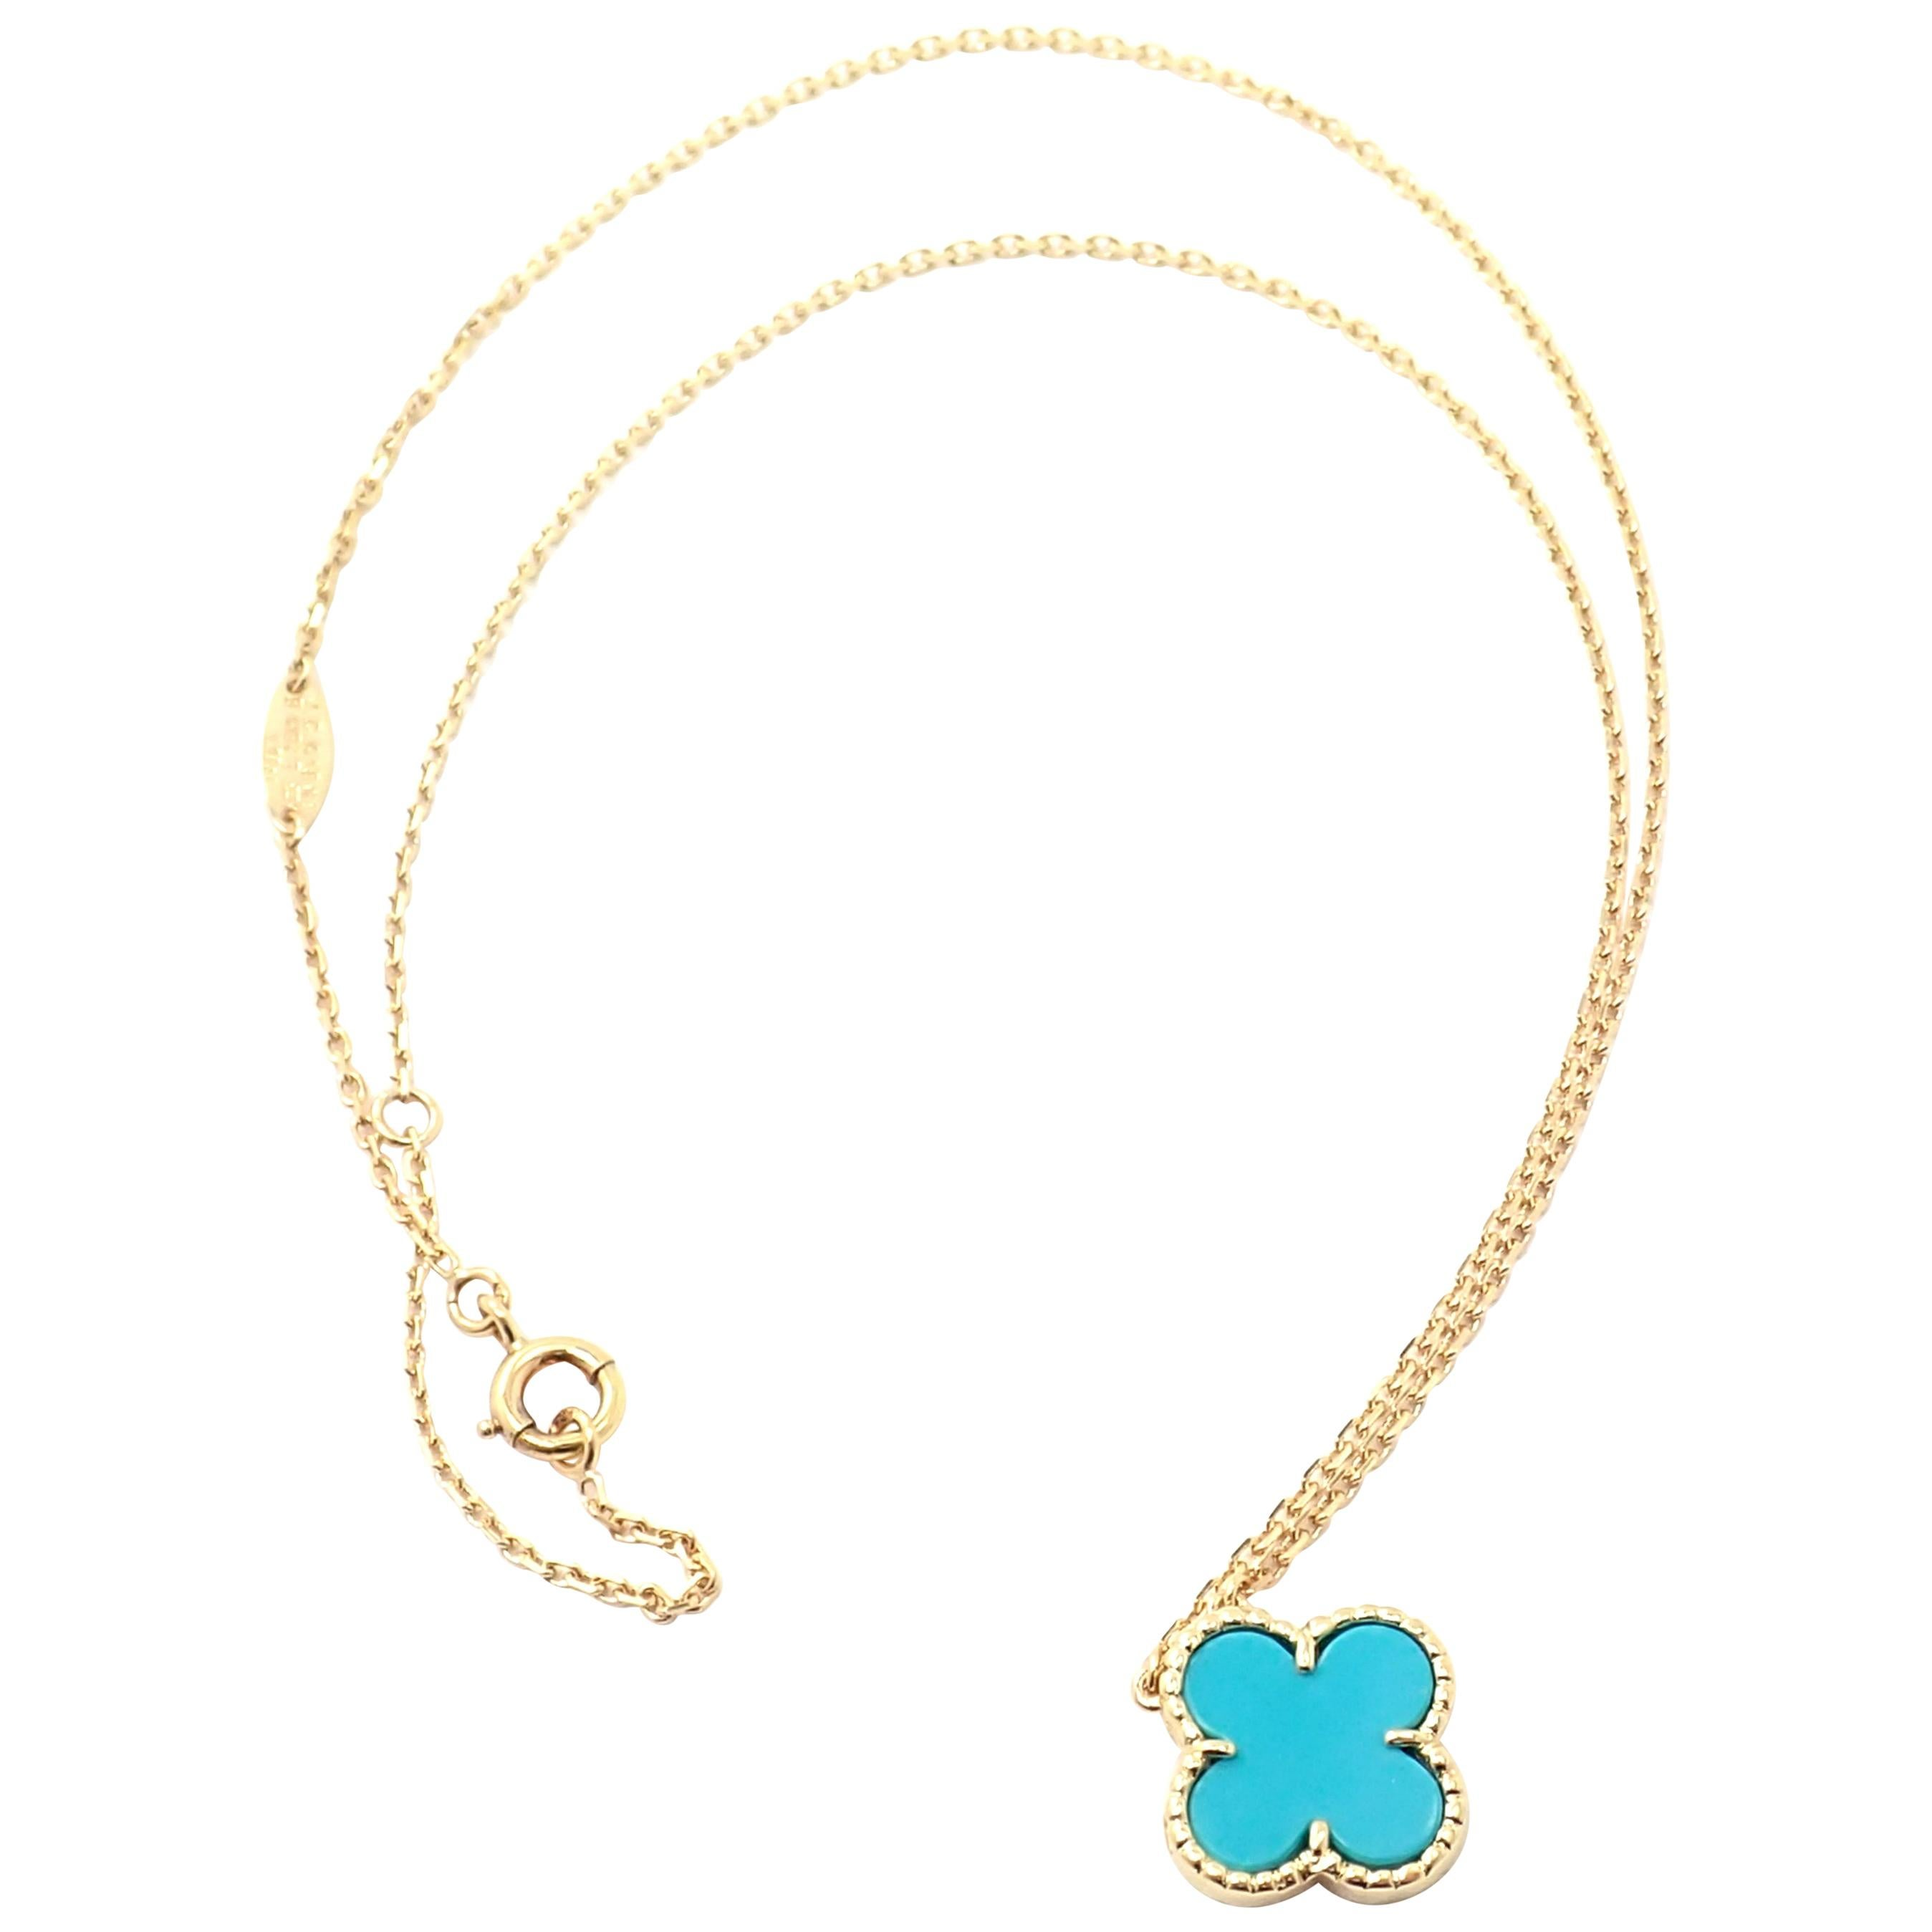 Van Cleef & Arpels Turquoise Vintage Alhambra Yellow Gold Pendant Necklace